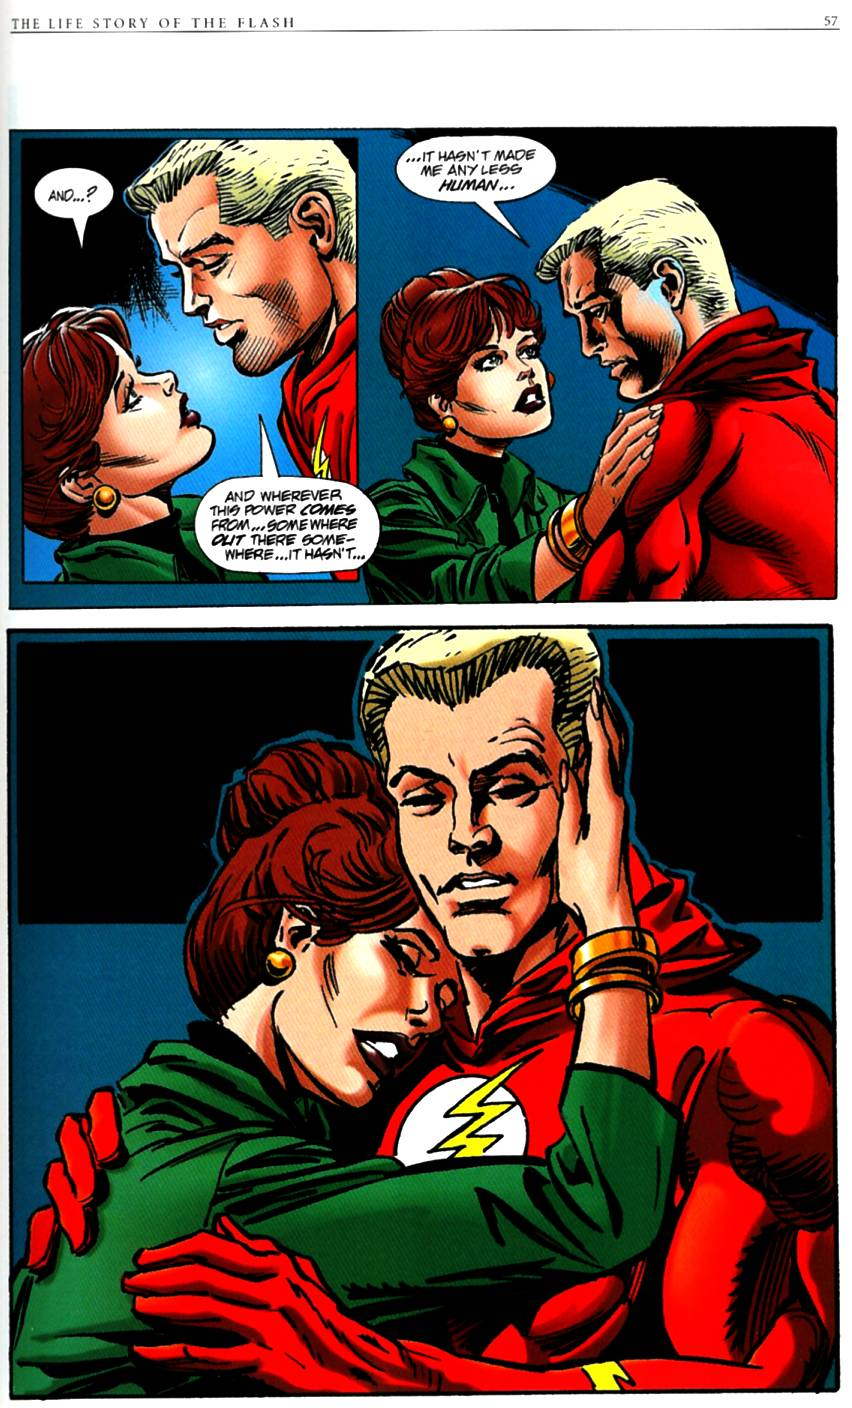 Read online The Life Story of the Flash comic -  Issue # Full - 59